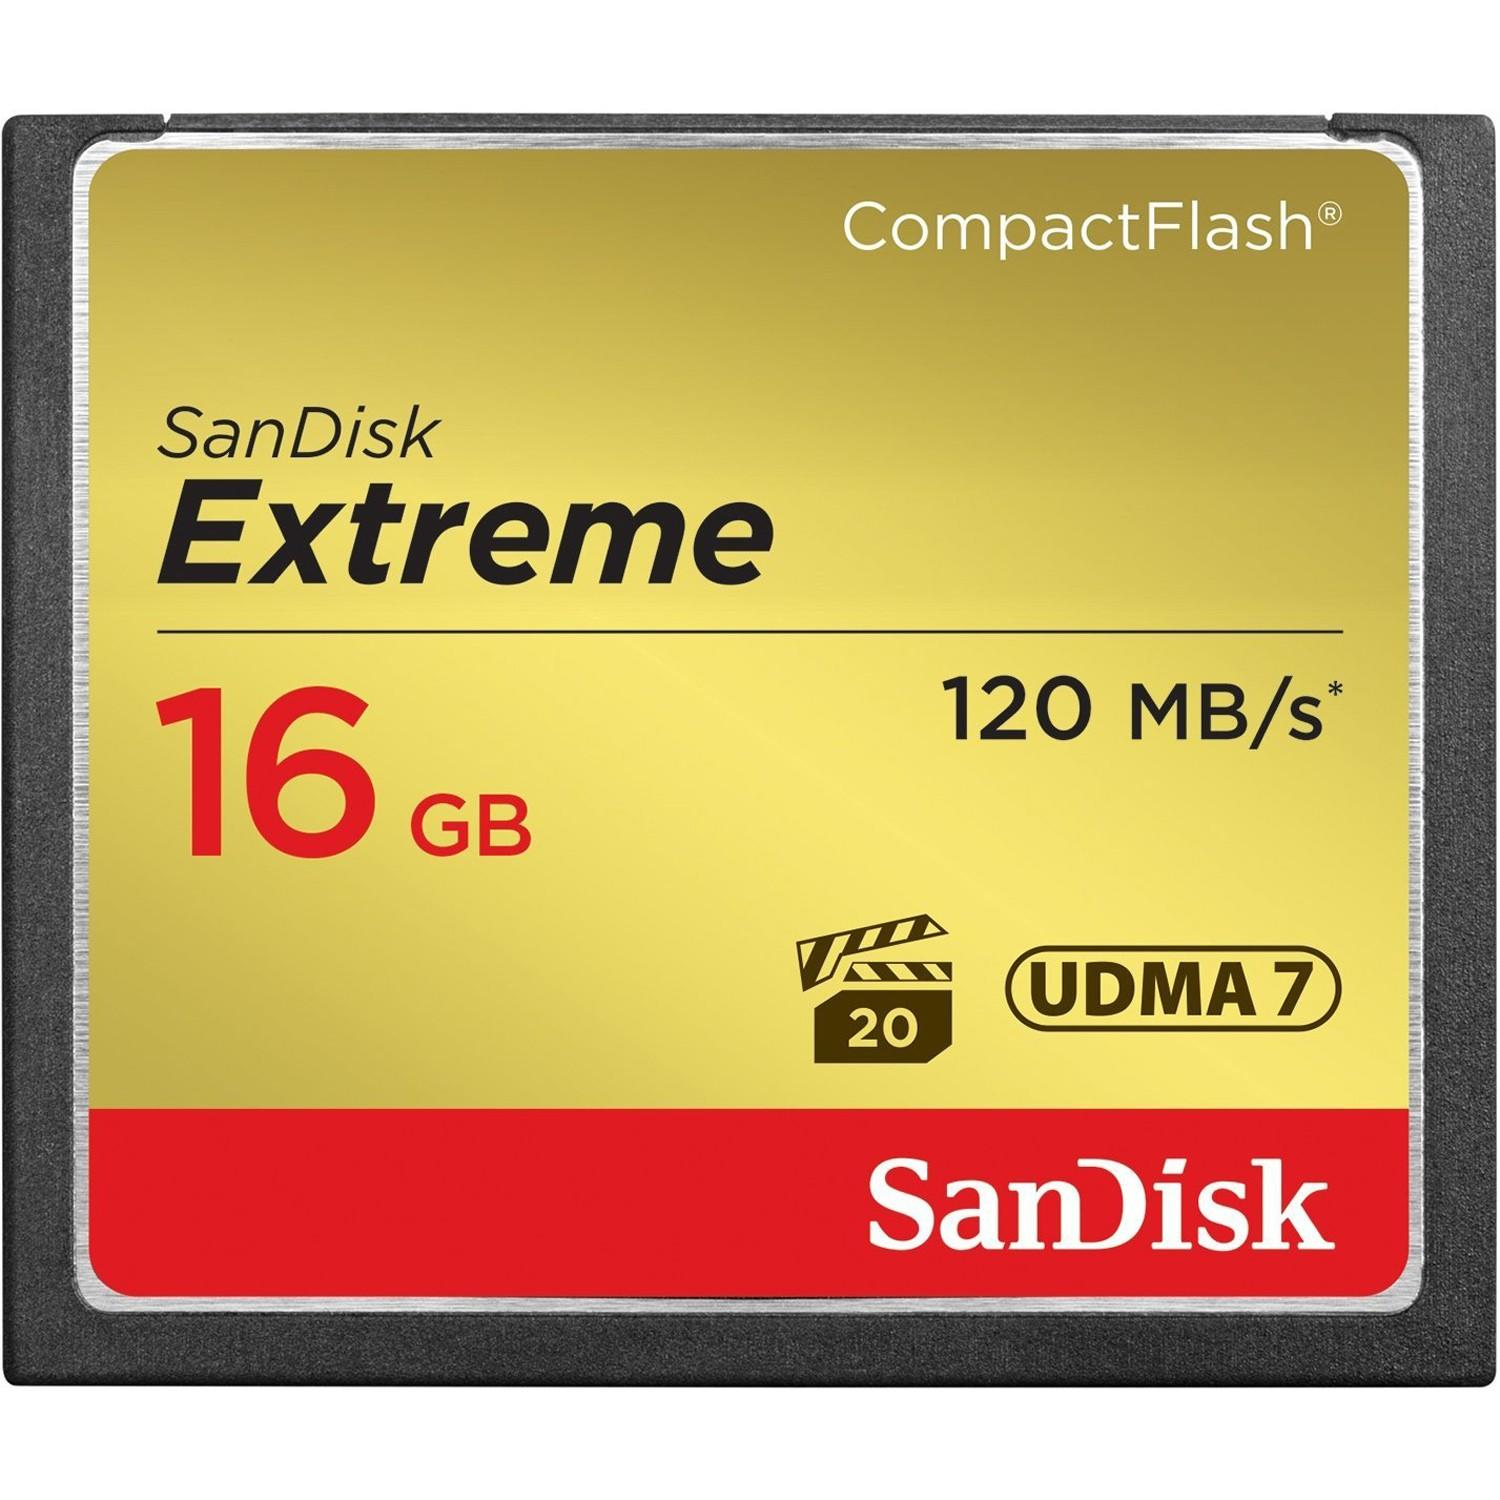 Cartão Compact Flash 16Gb SanDisk Extreme de 120mb/s 800x